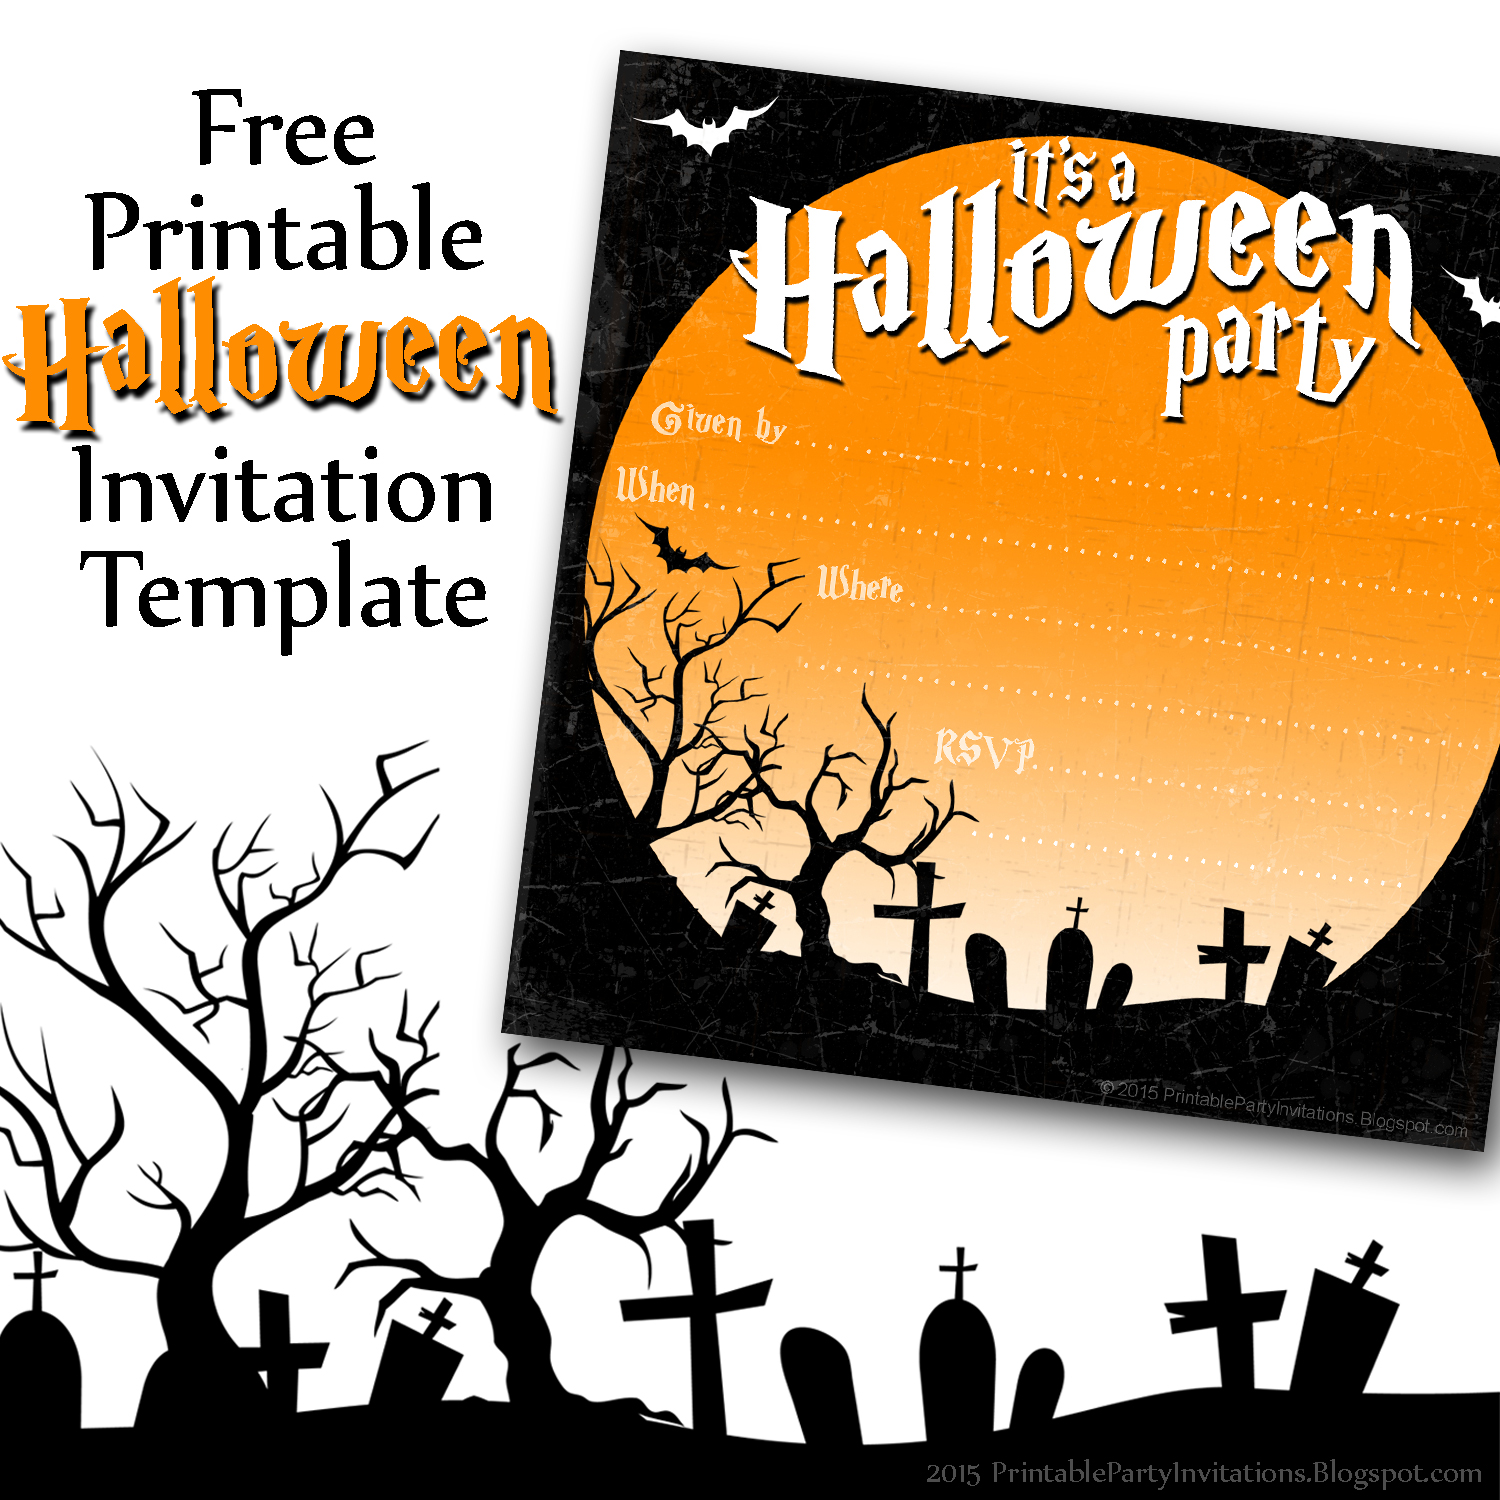 It is an image of Free Printable Halloween Invitations for 13 year old